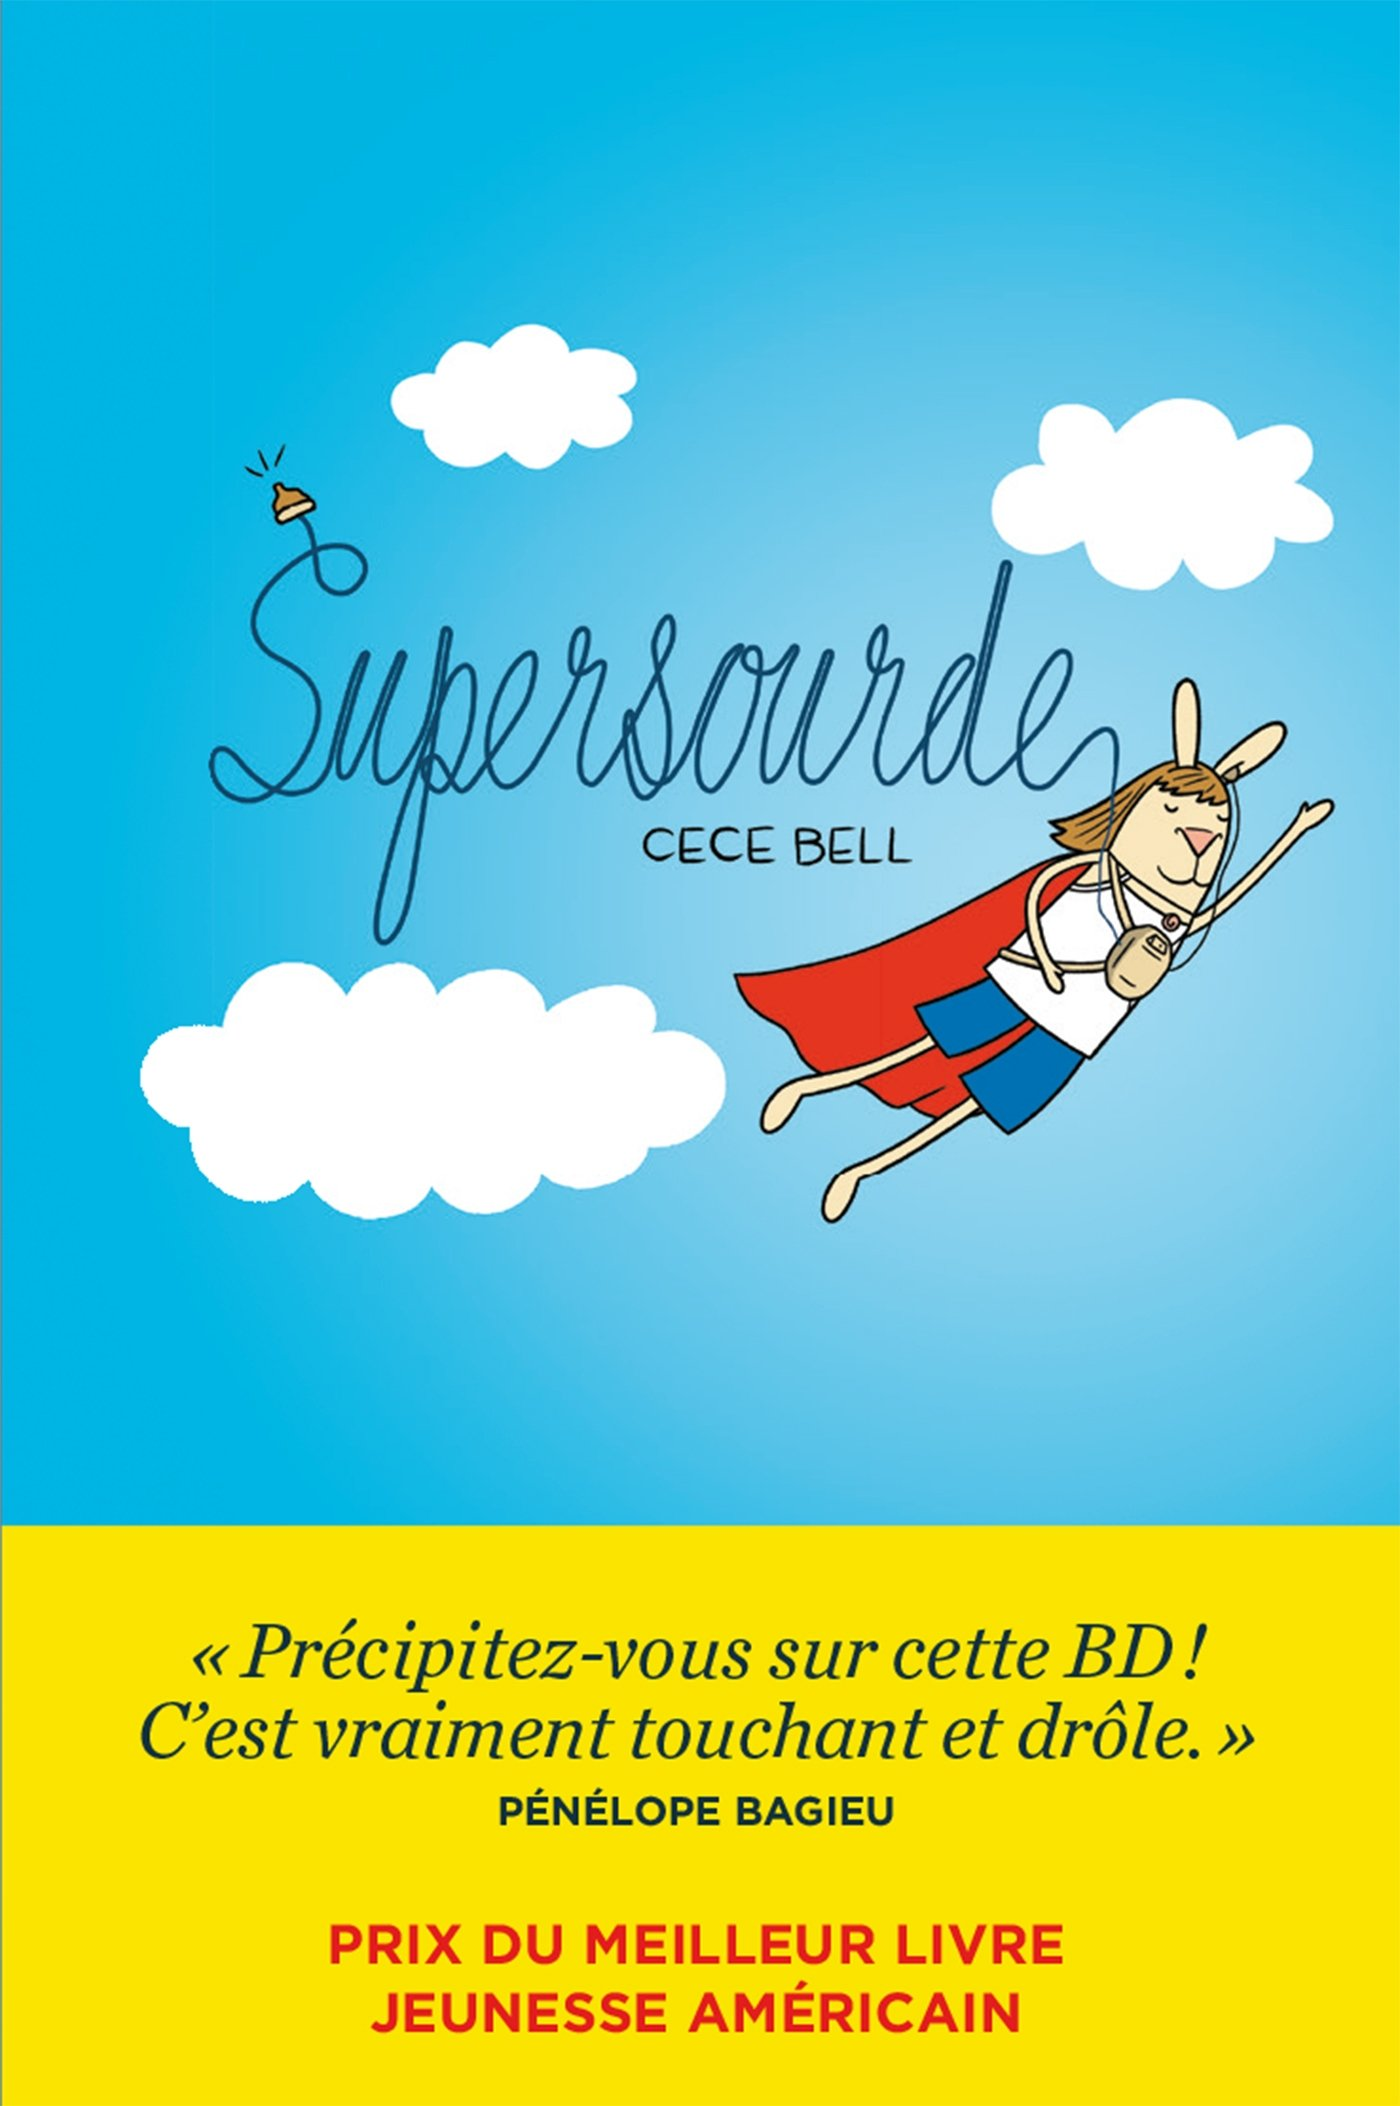 Cece Bell - Supersourde - Couverture